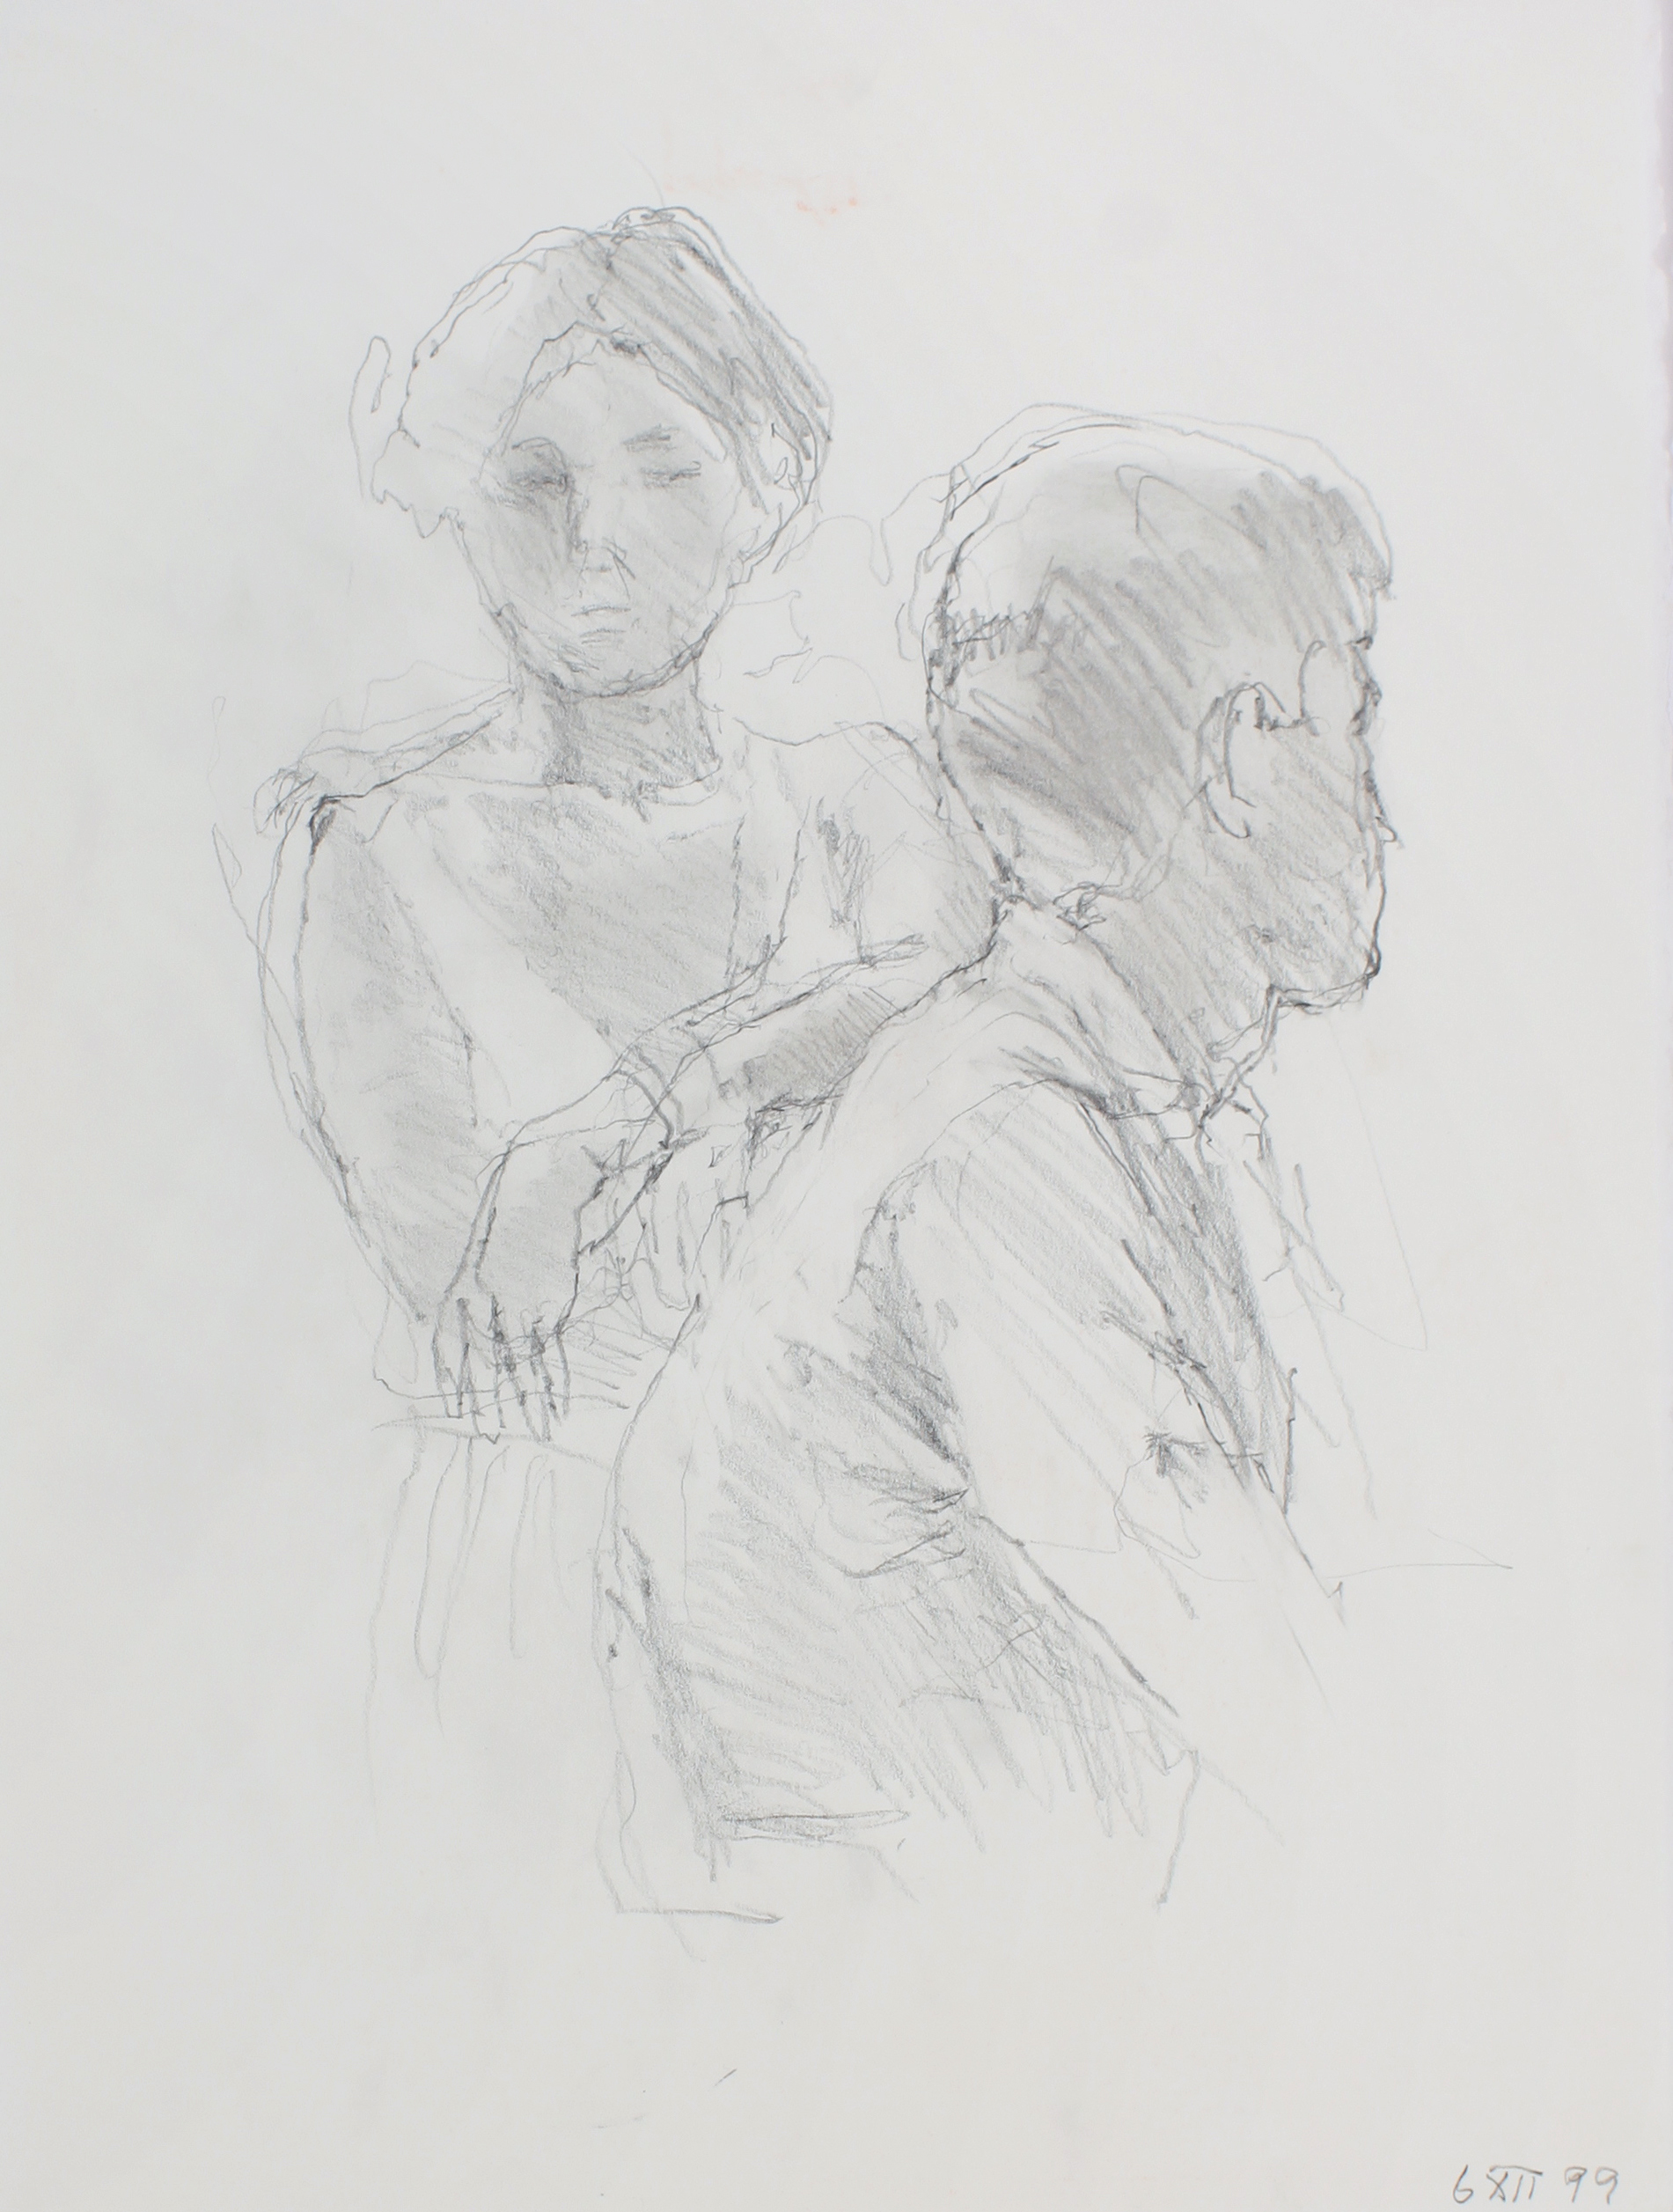 1999_Facing_Female_with_Male_Figure_in_Profile_pencil_on_paper_WPF588.jpg